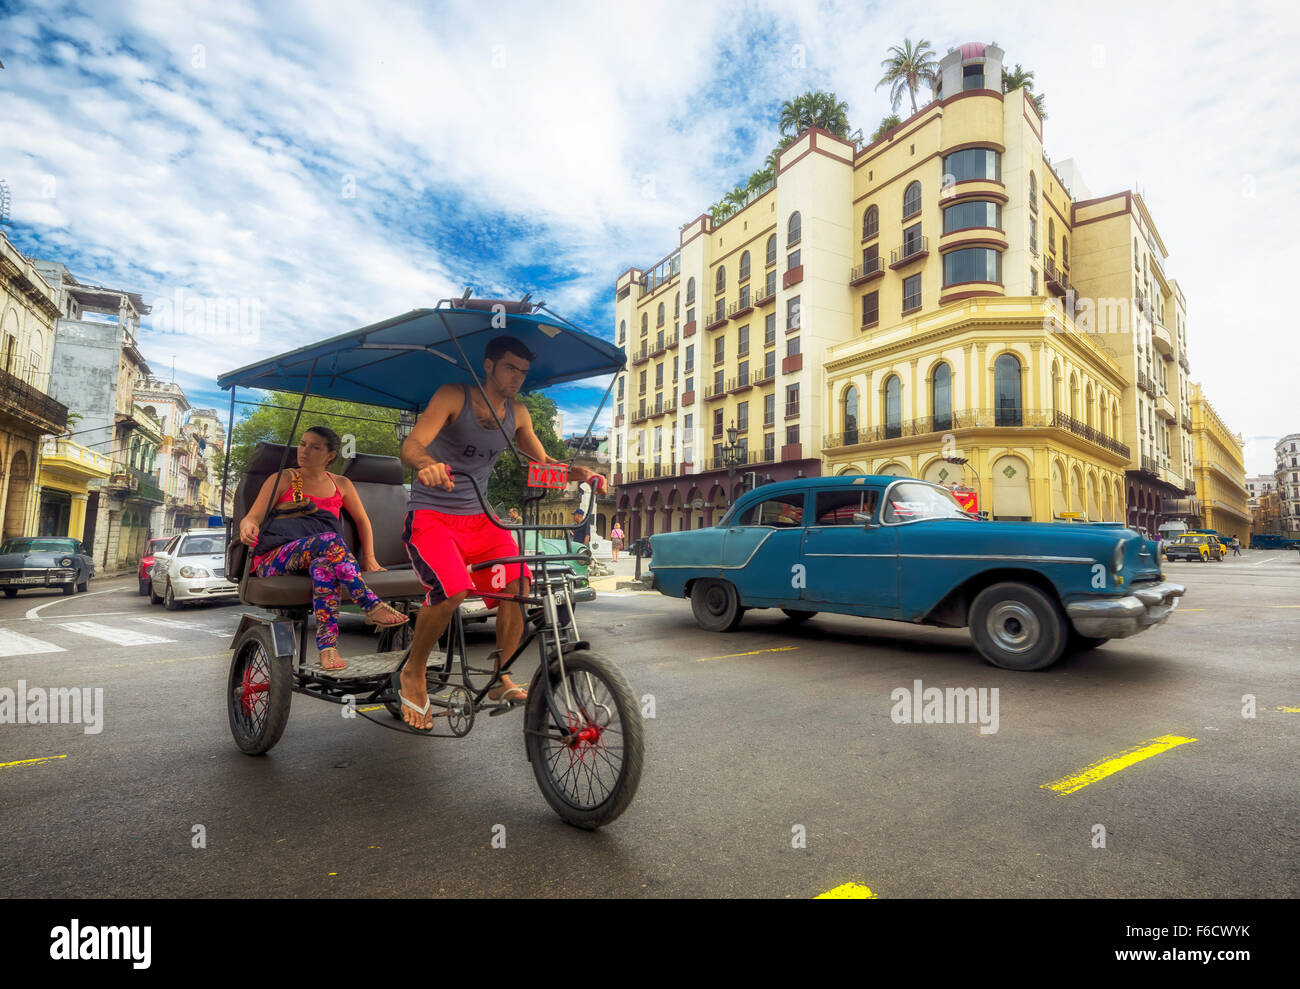 Oldtimer in the streetscape, pedicab, people taxi on the street intersection near the Hotel Telegrafo, La Habana, - Stock Image